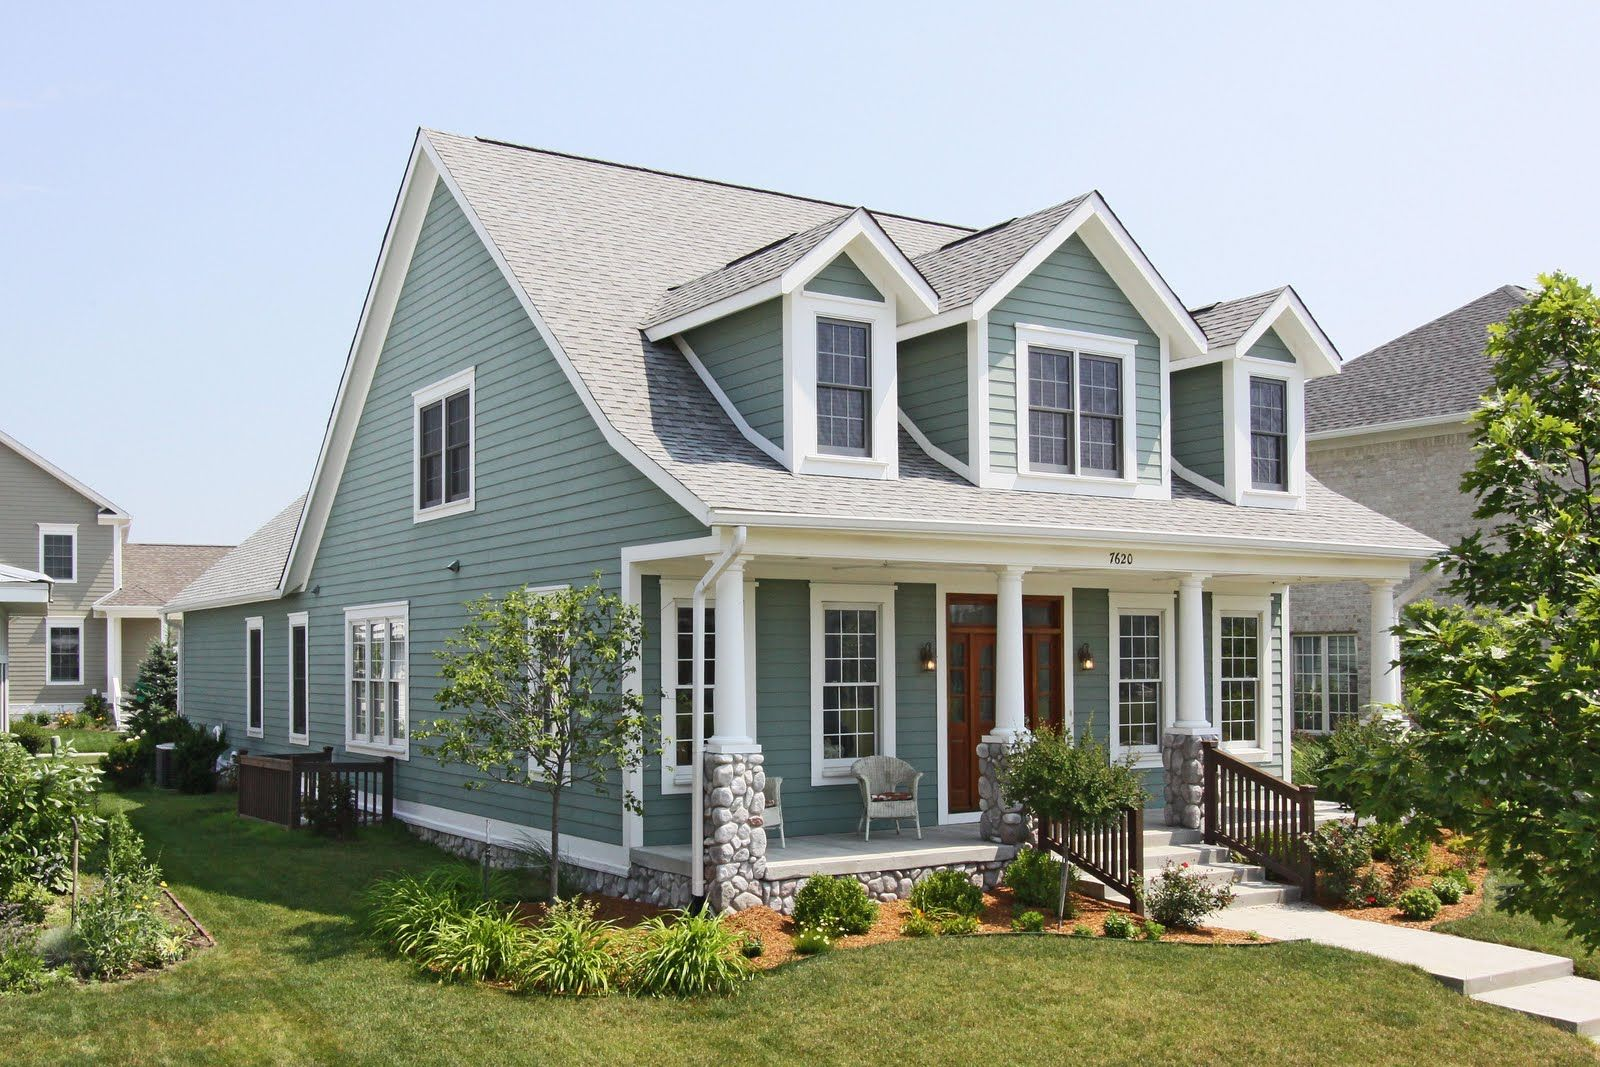 Cape cod homes with porches new listing in stonegate for Cod homes